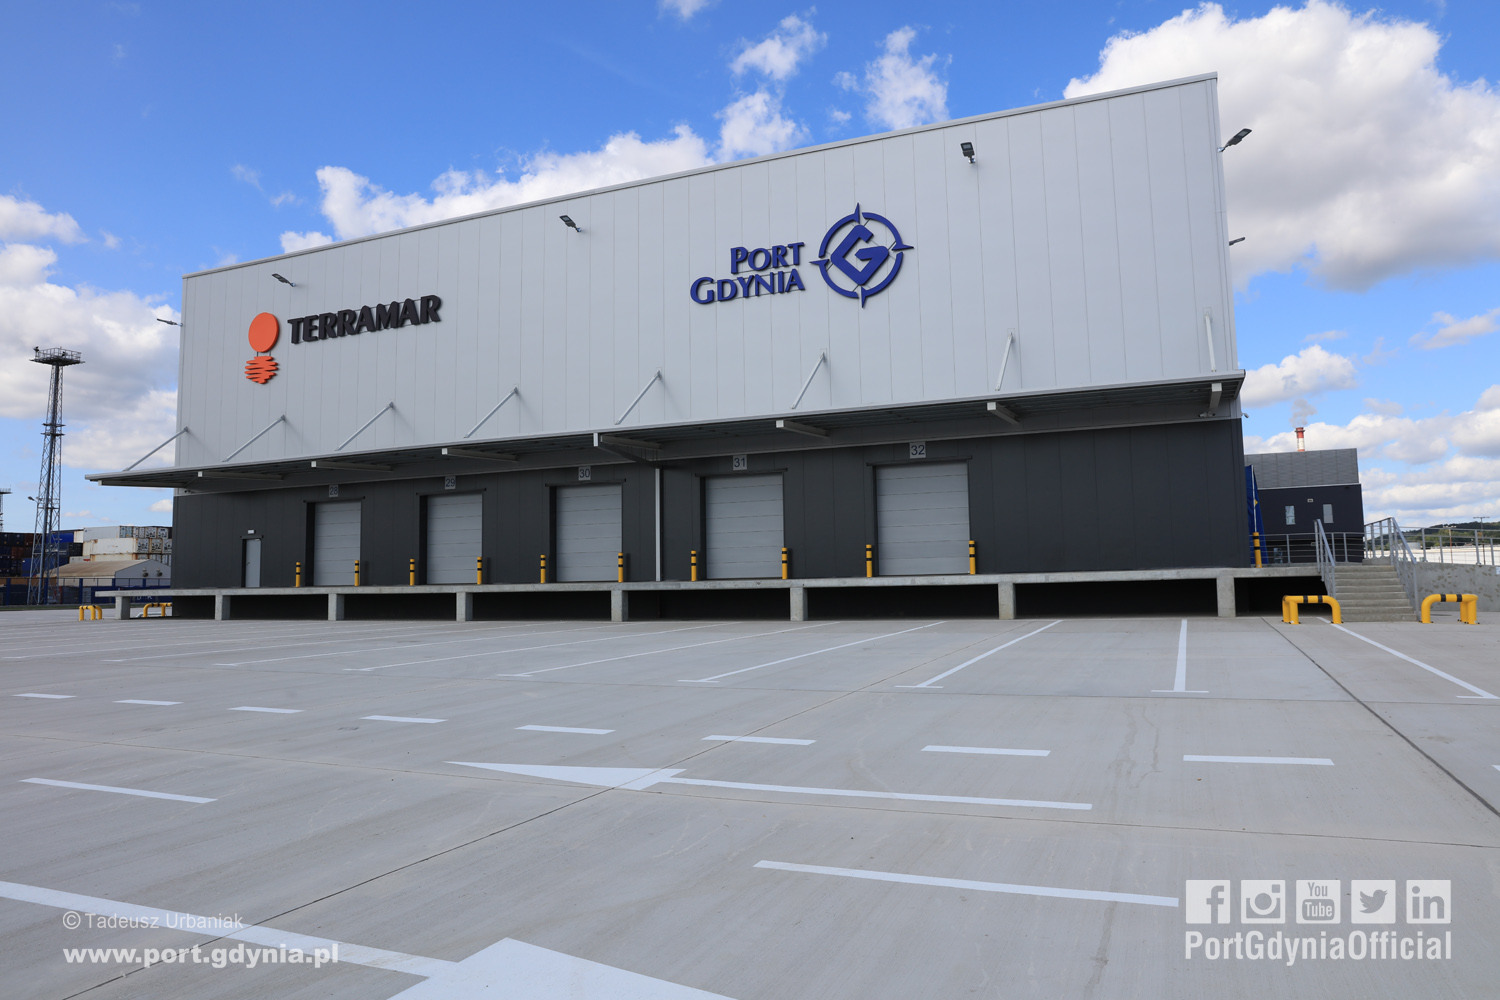 High Storage Warehouse opened in the Port Gdynia Logistics Centre